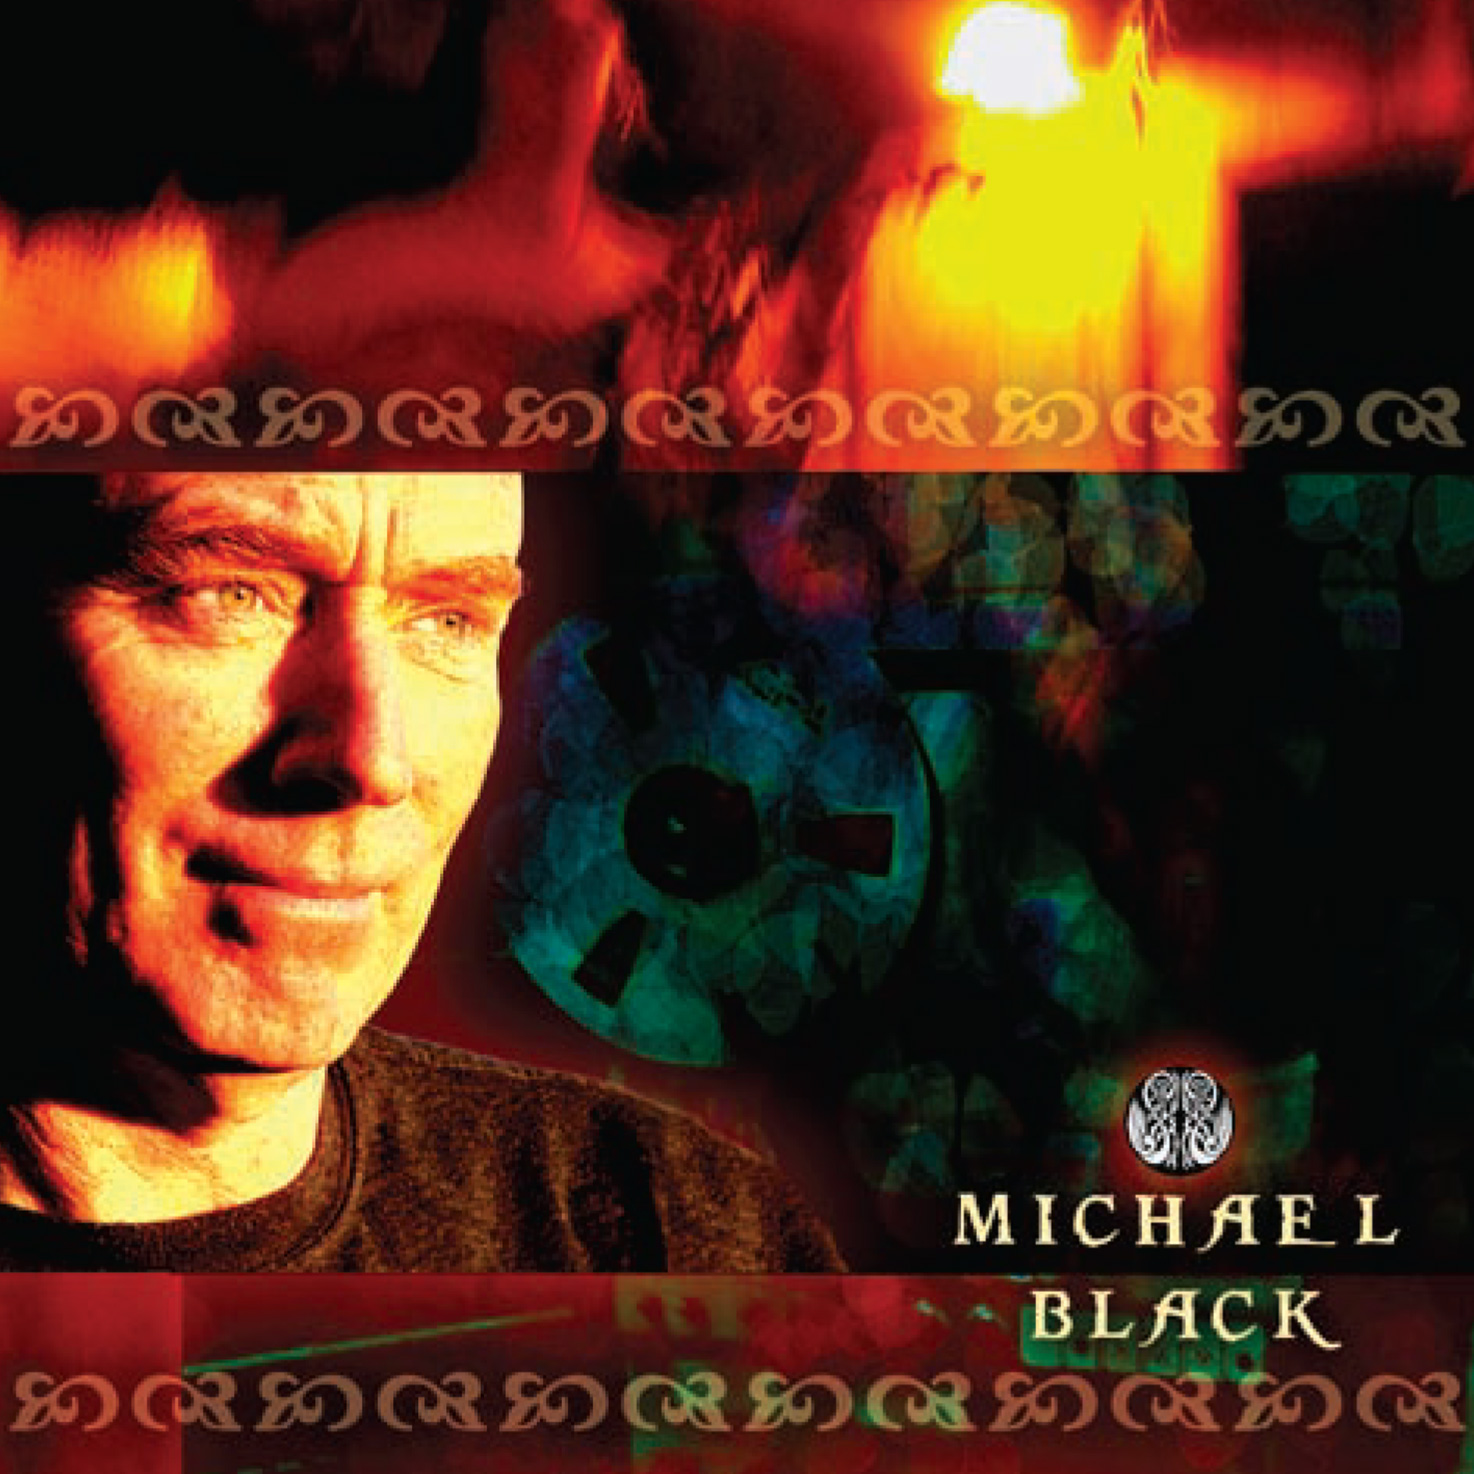 Michael Black cover photo